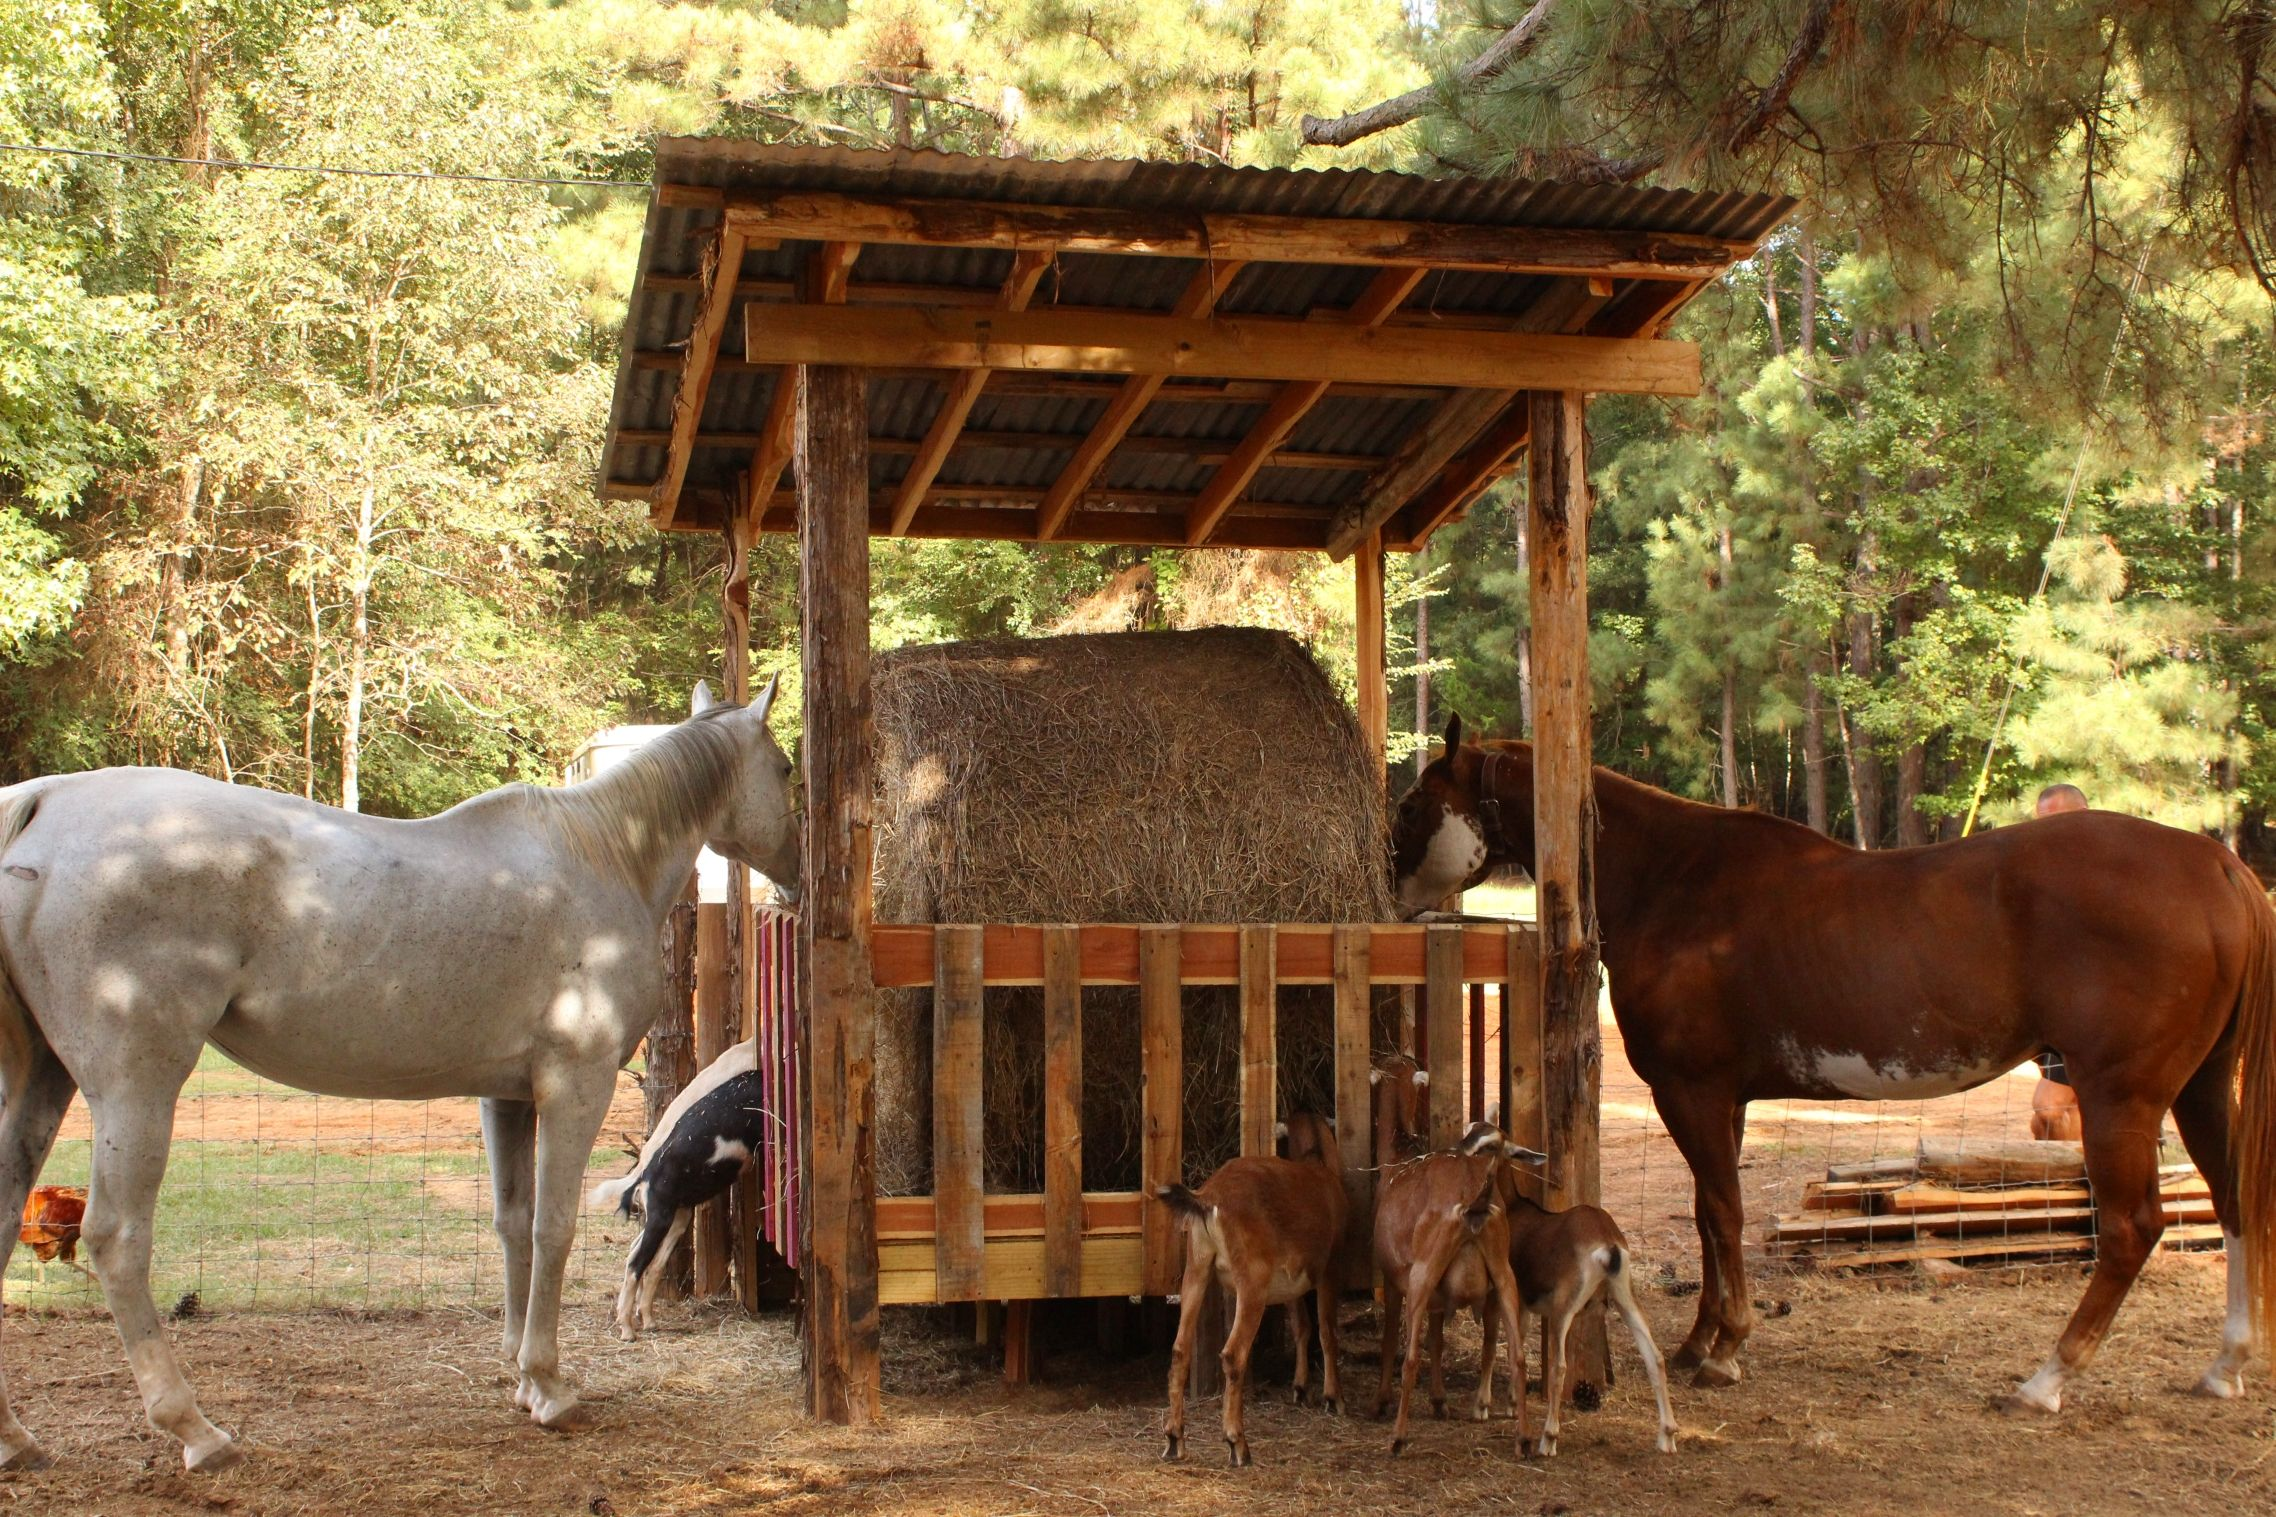 Round Bale Hay Feeder For Horse And Goats That We Built